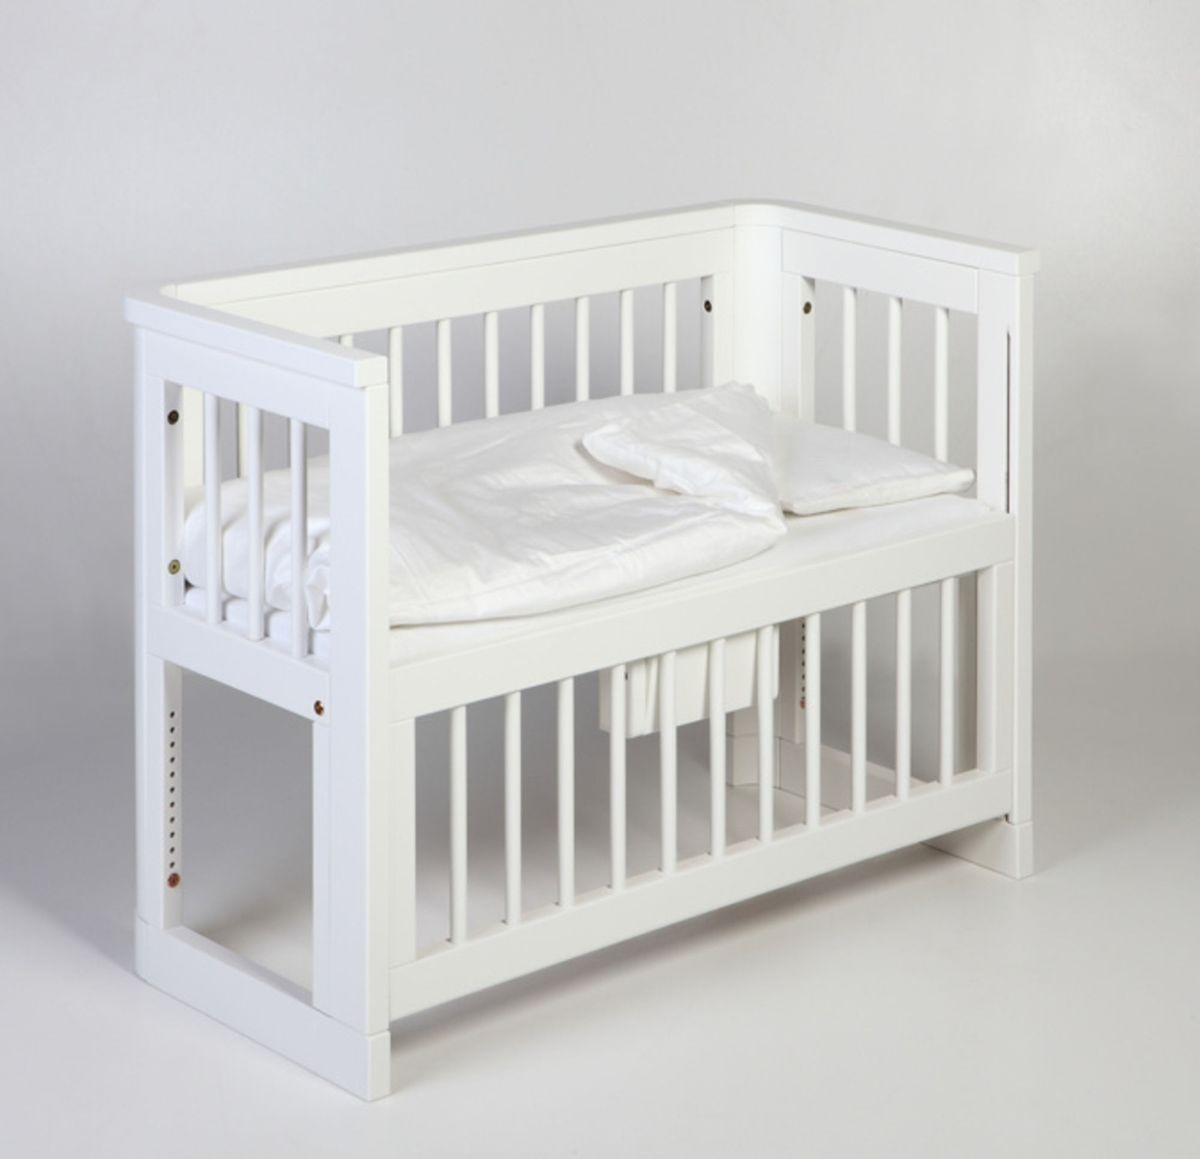 Baby crib for sale tulsa - Baby Bedside The Troll Sun Bedside Bassinet White The Safe Way To Sleep Close To